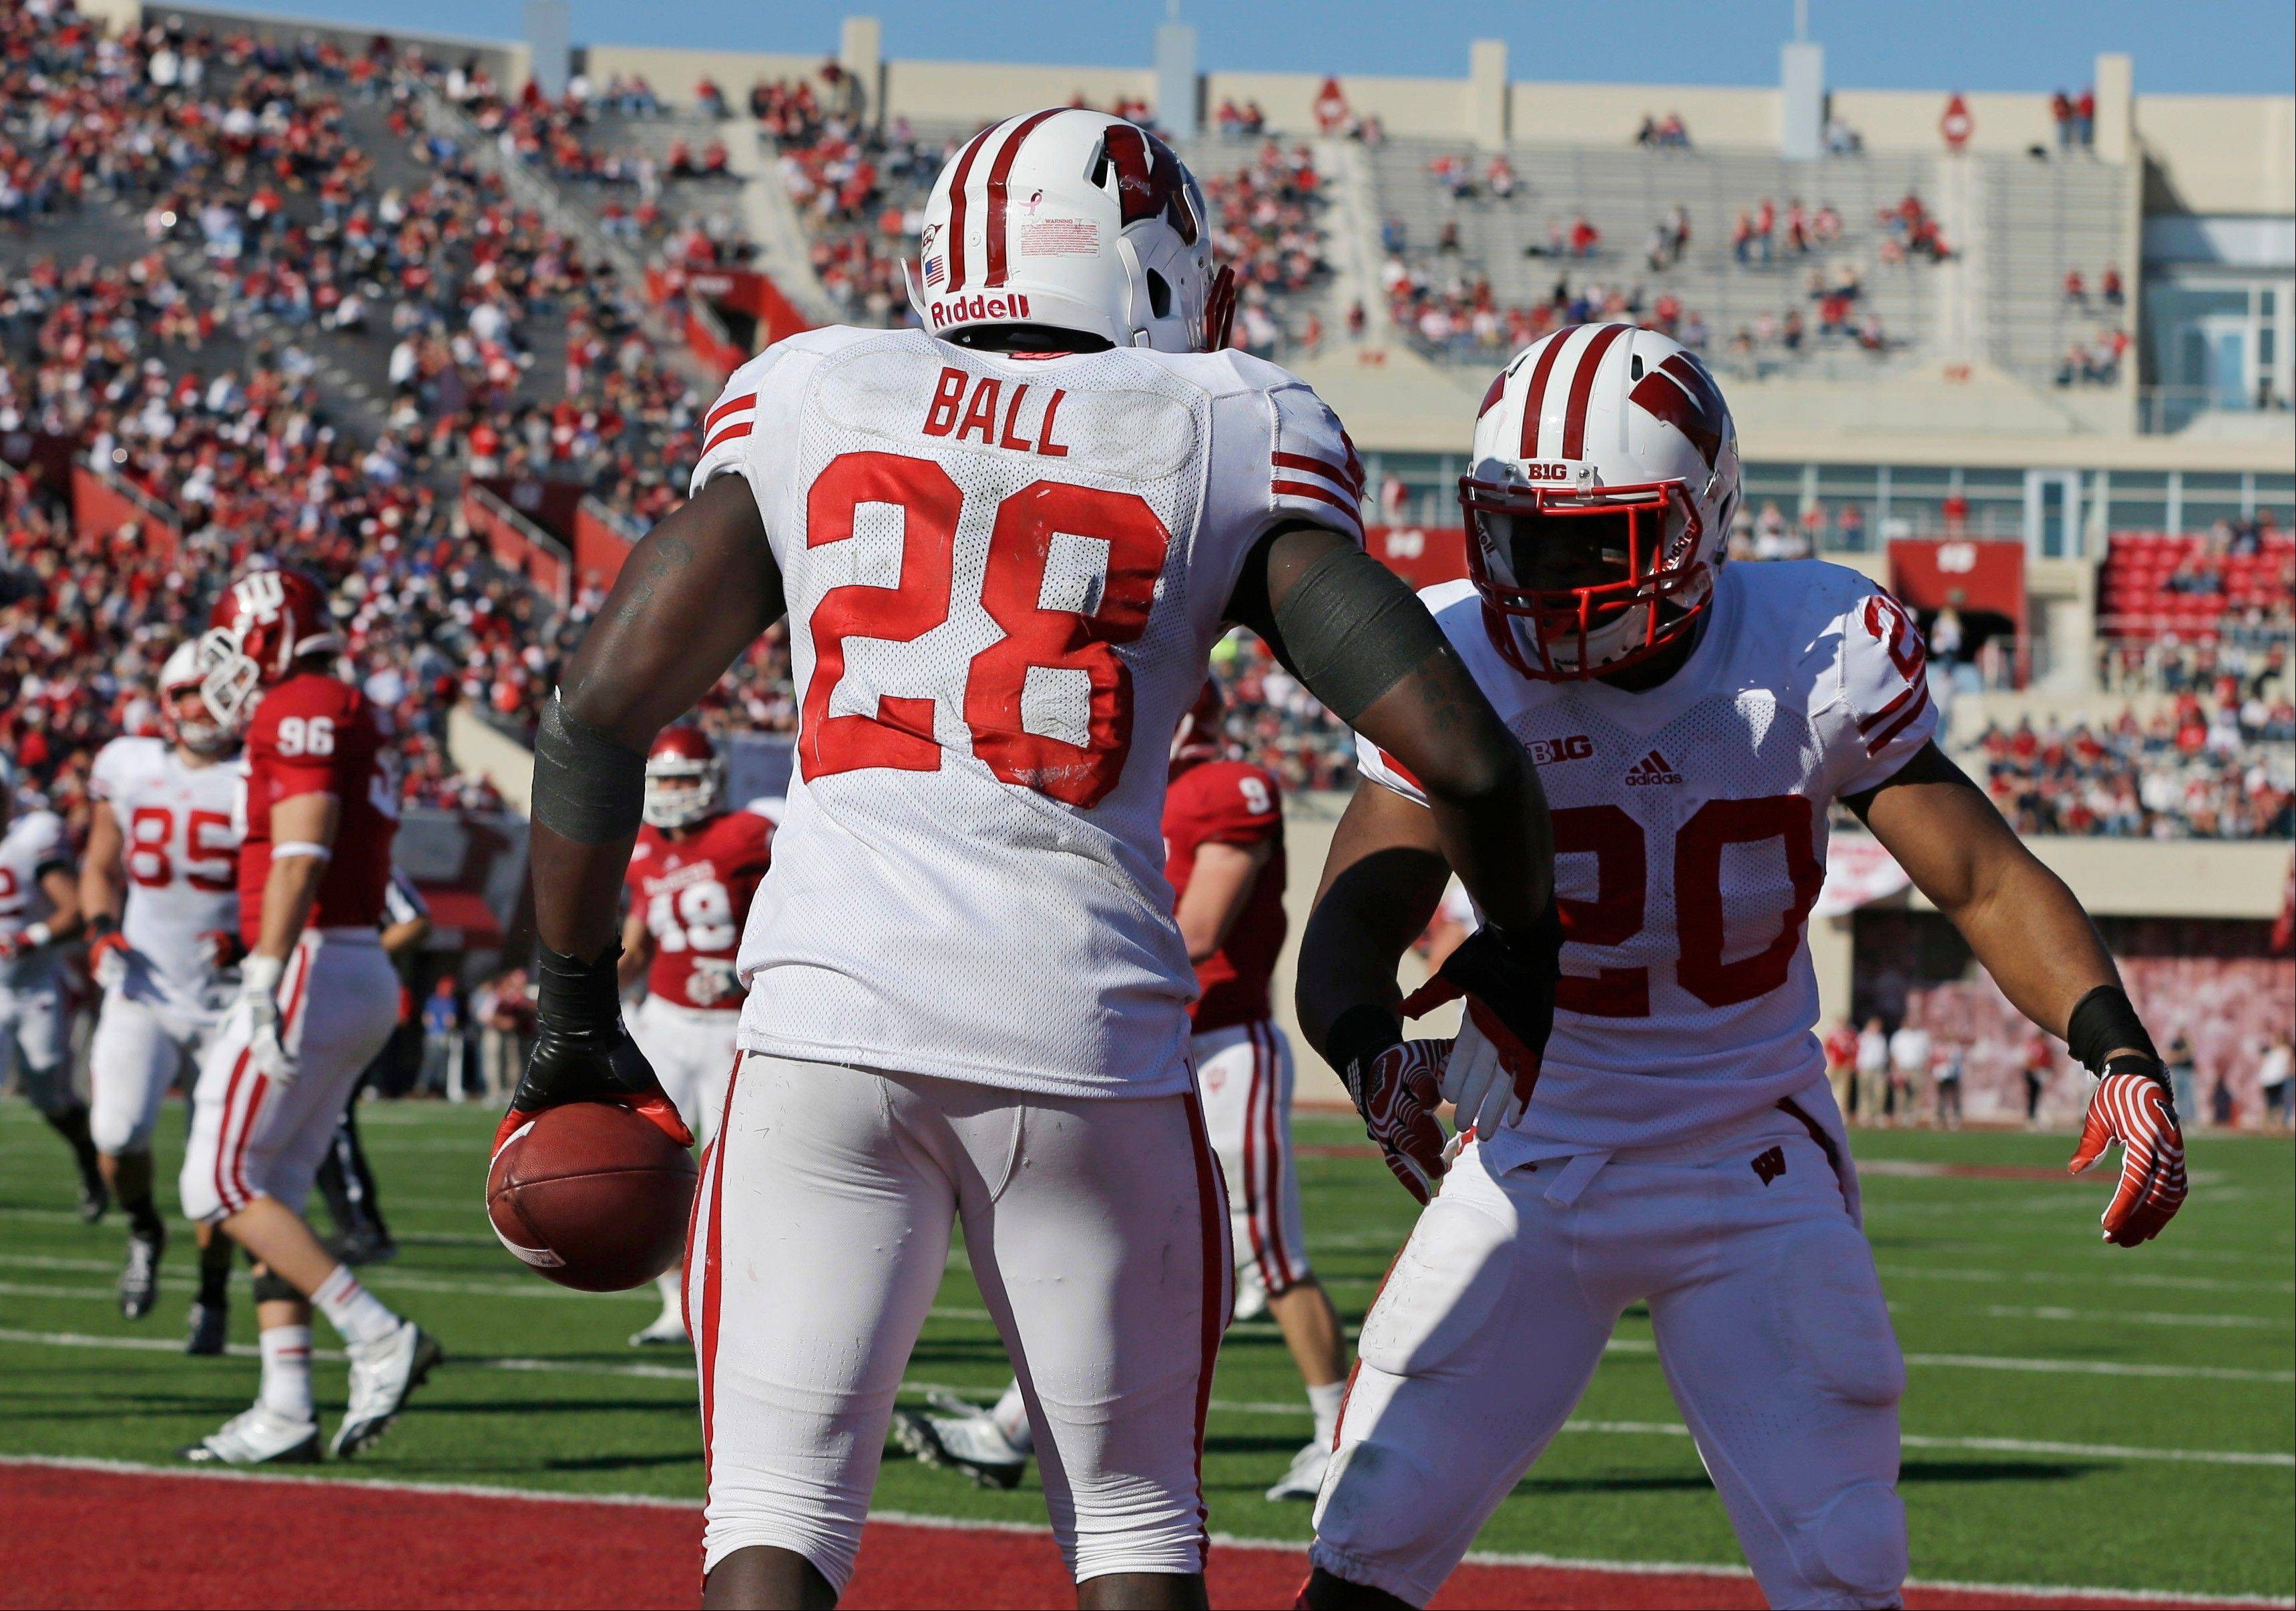 Badgers will run, Buckeyes will try to stop them